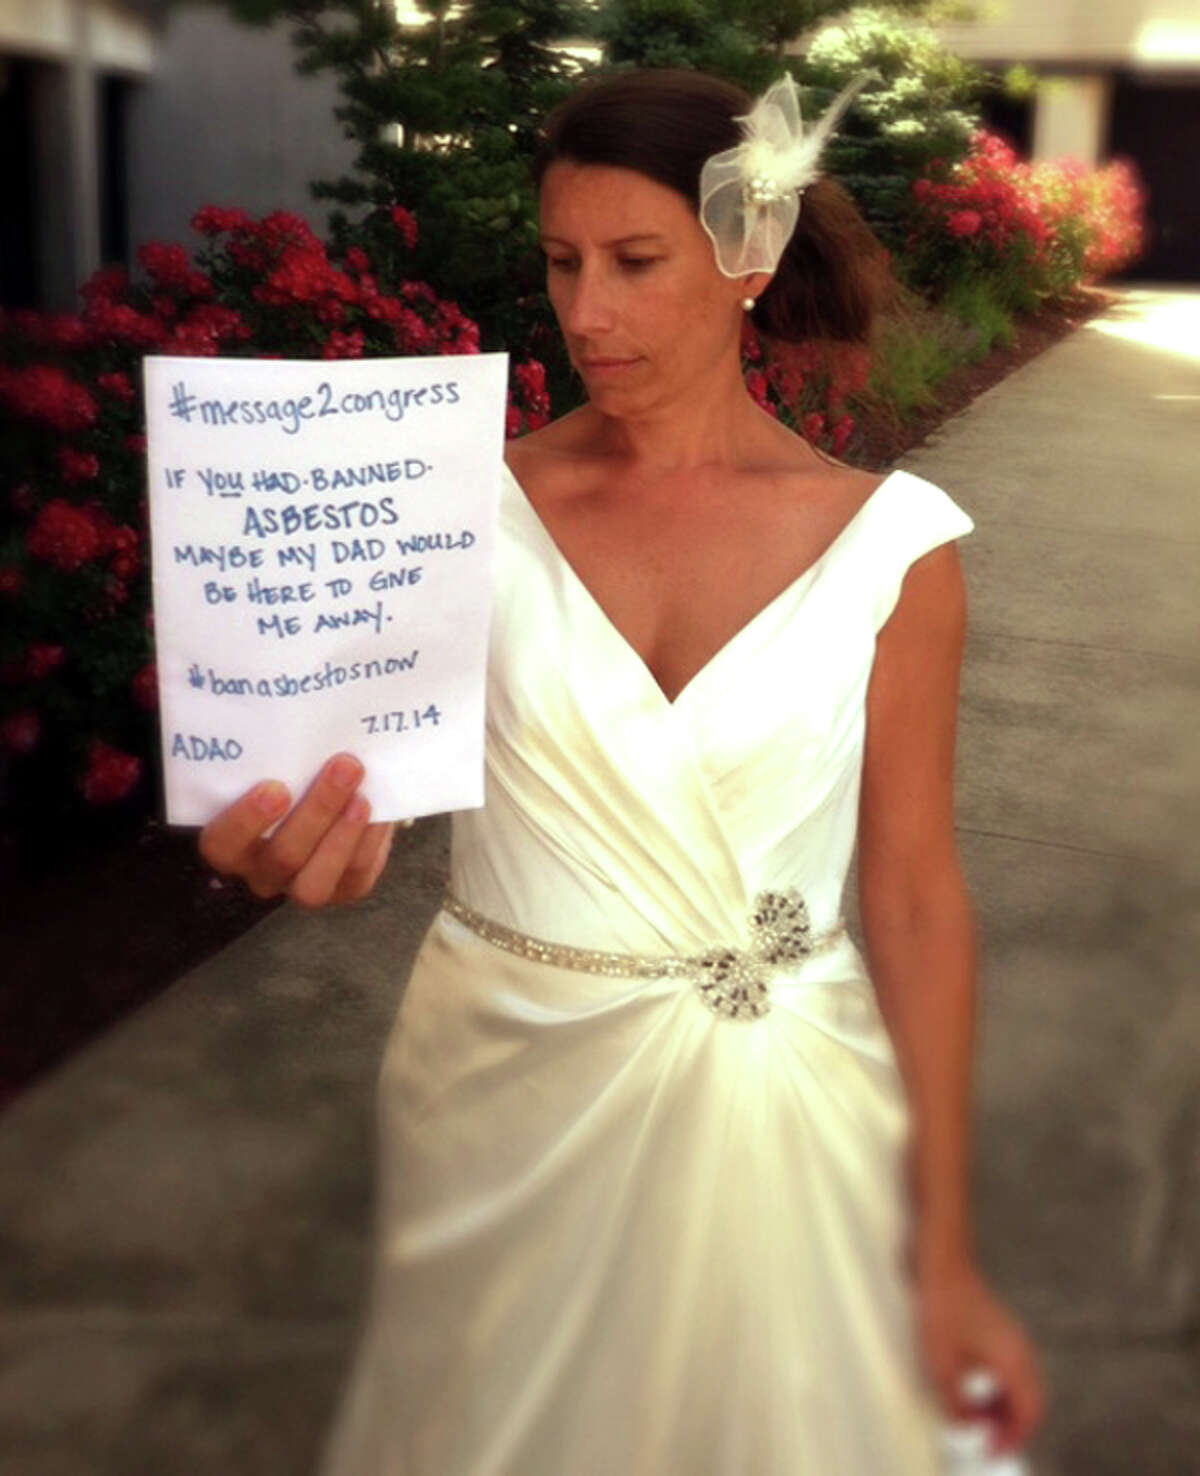 """When Courtney Davis got married last summer, she posed in her gown with a large placard: """"Message2Congress: If you had banned asbestos, maybe my dad would have been here to give me away."""" Davis' father, Larry W. Davis of Southington, Conn., died in July 2012 of mesothelioma, a cancer of the lining of the chest that is 100 percent preventable because is caused by exposure to asbestos fibers."""